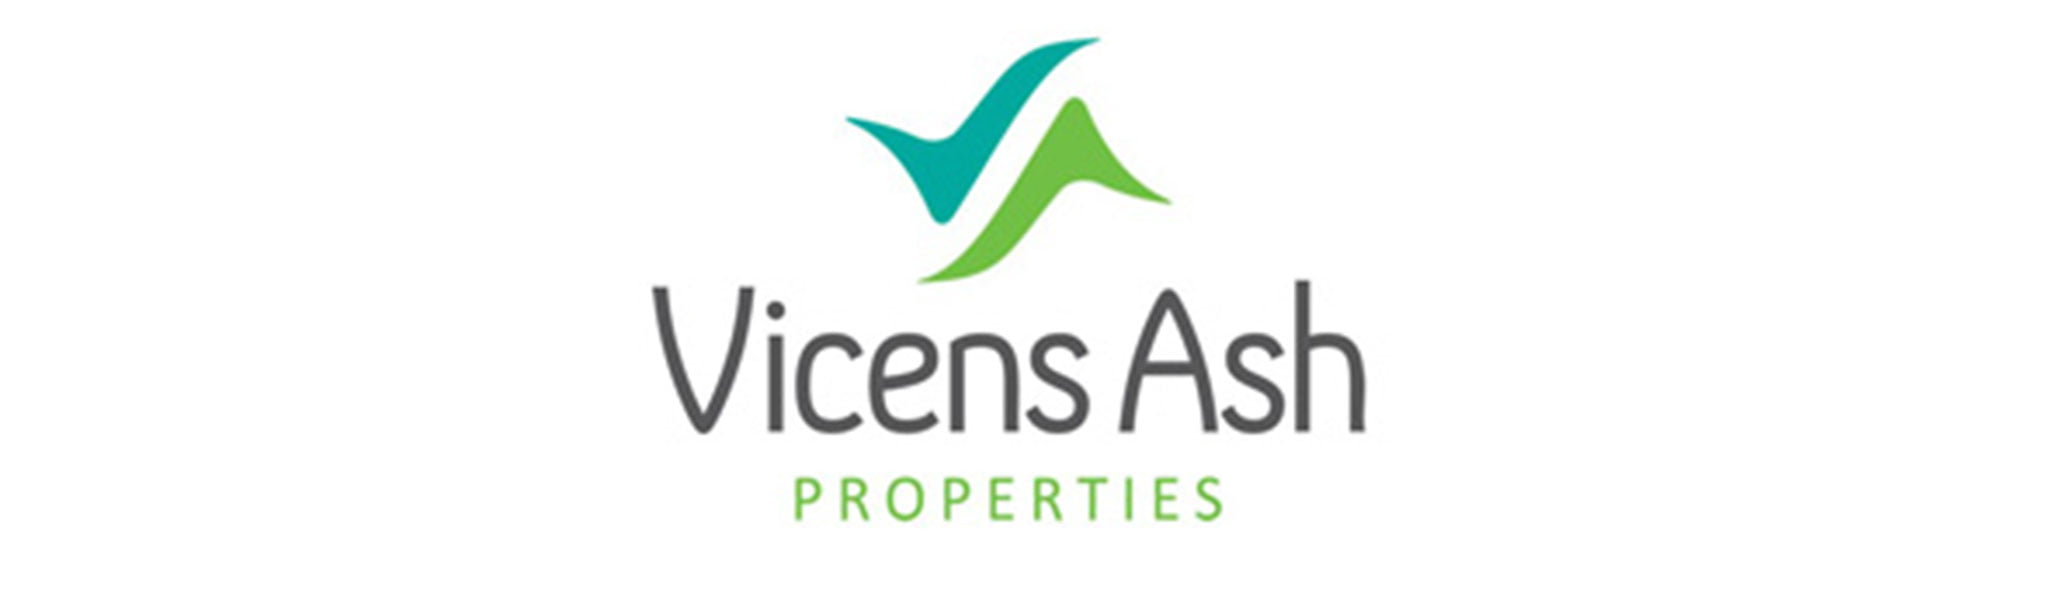 Logotipo de Vicens Ash Properties